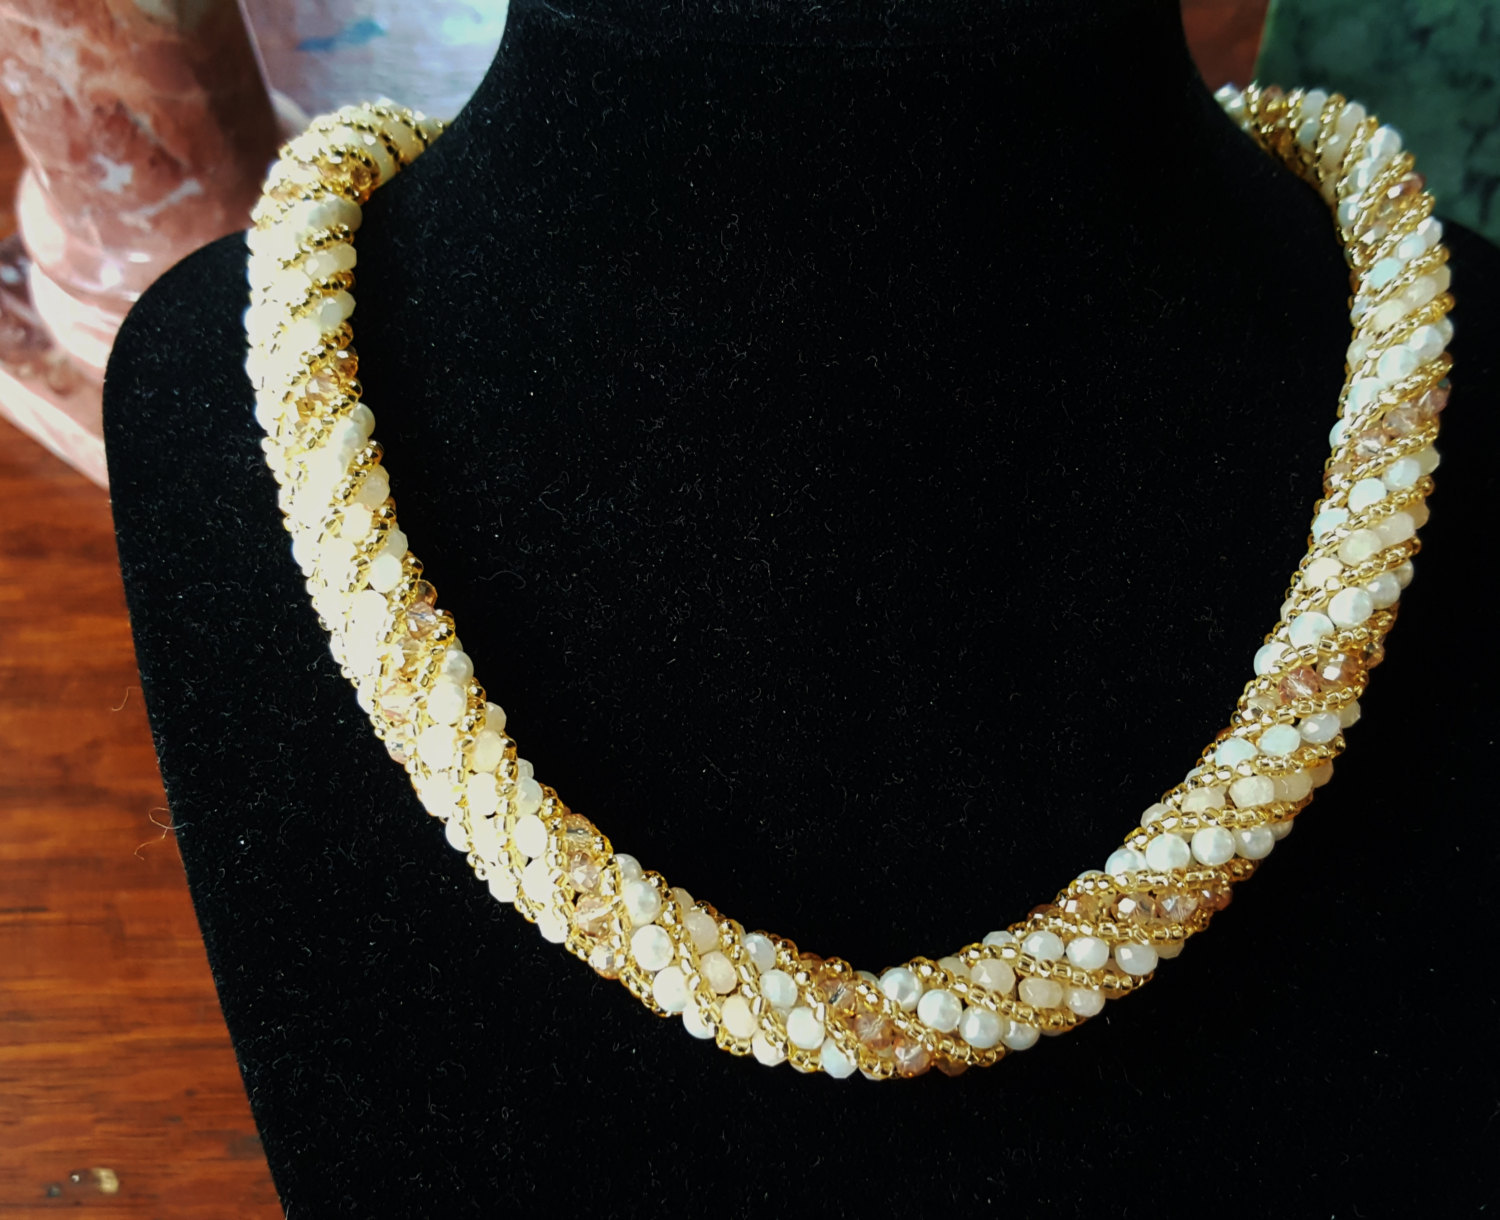 Classy and Elegant Russian Spiral - Free Shipping!! - handmade beaded necklace